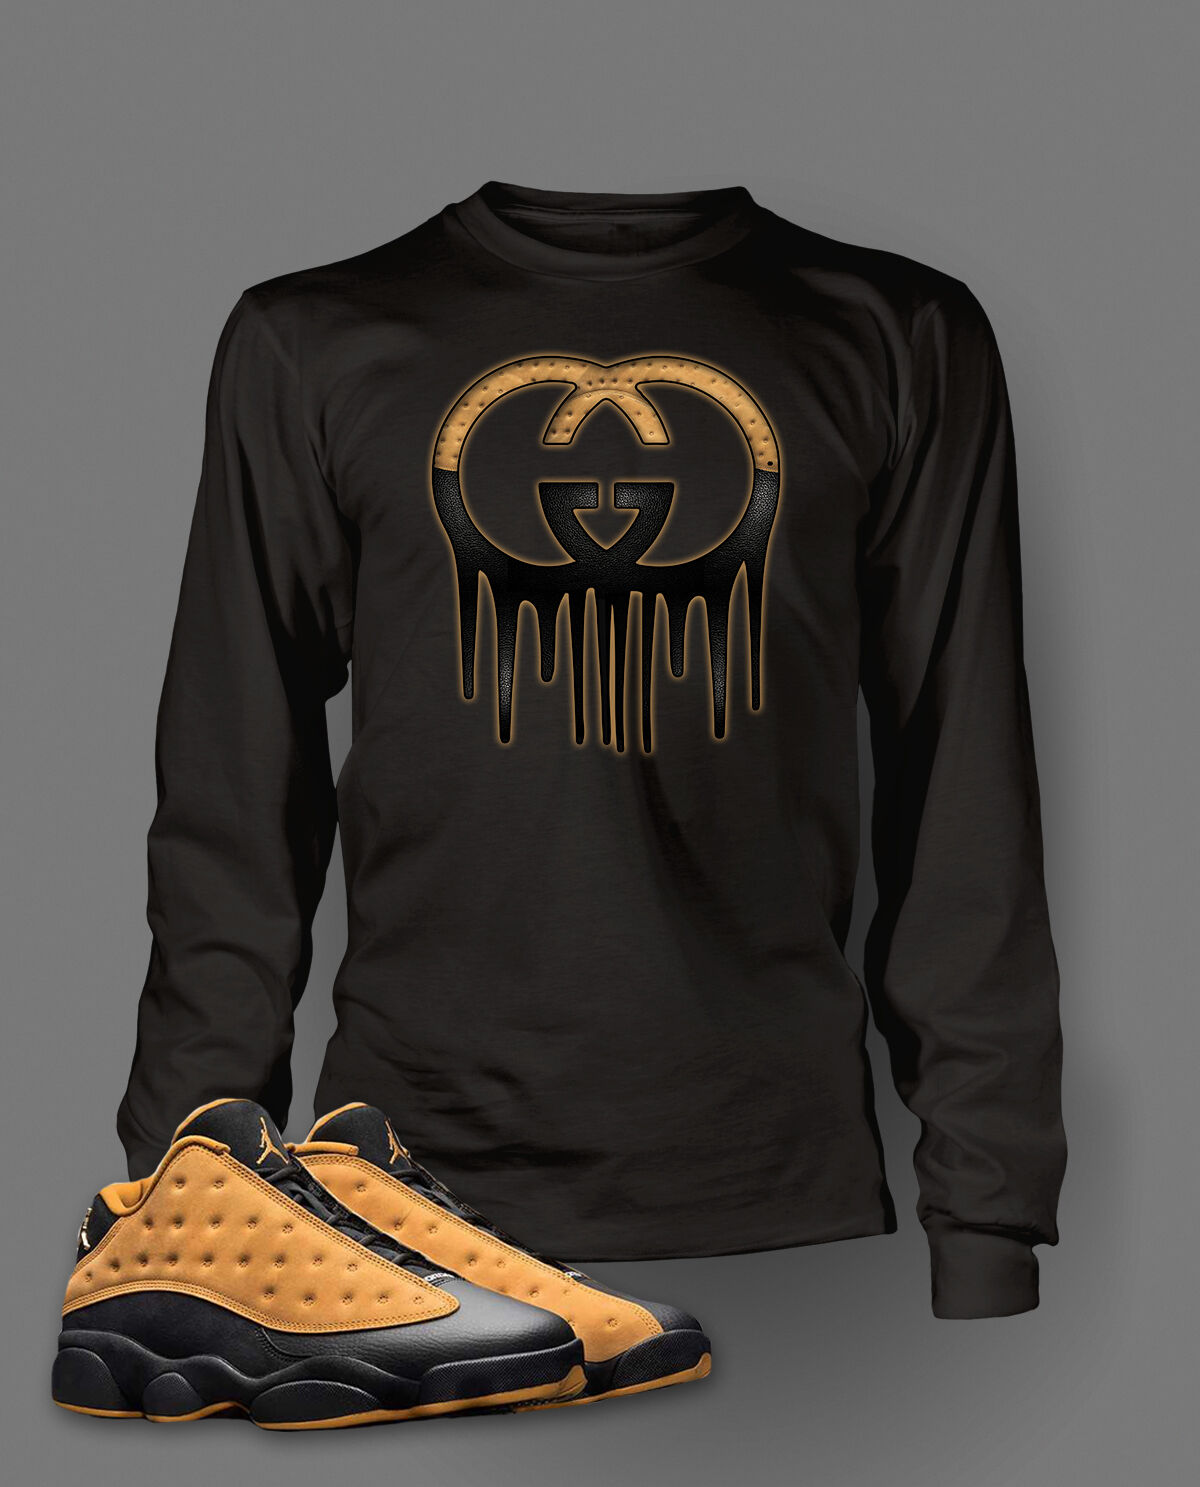 Graphic Tee Shirt to Match AIR JORDAN 13 LOW CHUTNEY shoes Big and Tall or Small